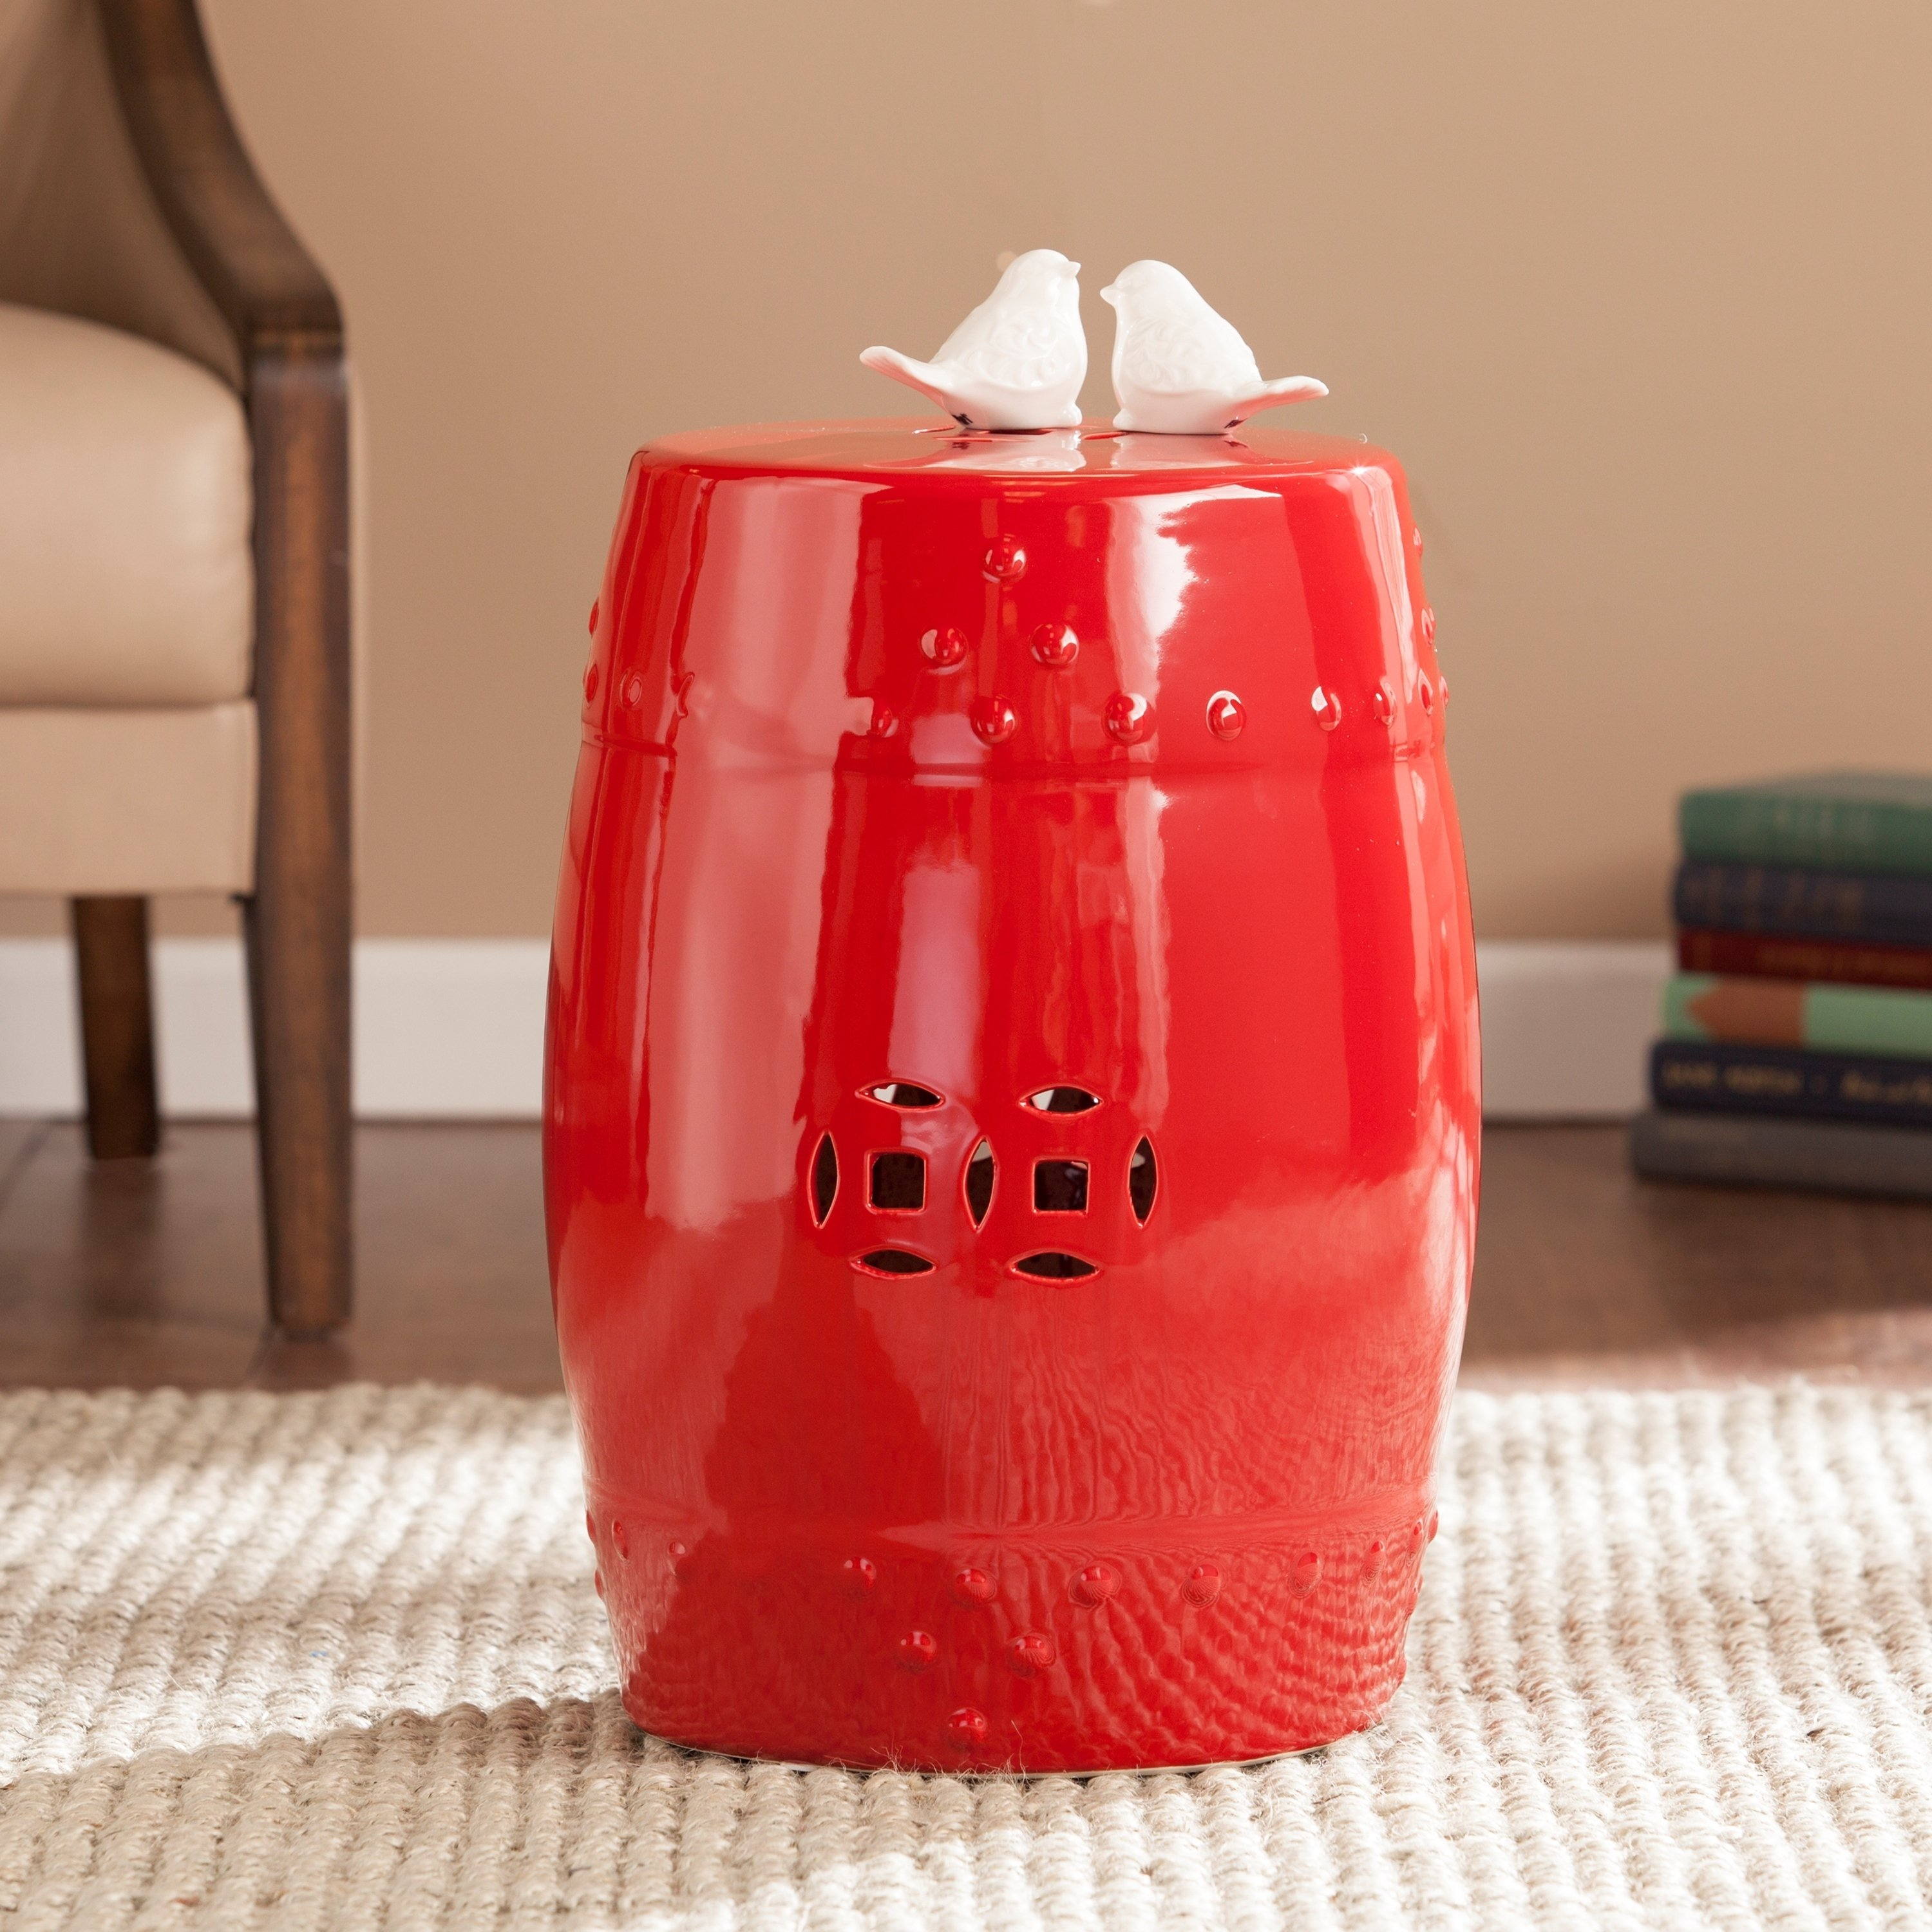 harper blvd salinas poppy red ceramic indoor outdoor accent upton home table stool garden free shipping today bedroom furniture runner battery powered dining lamp hexagon decor